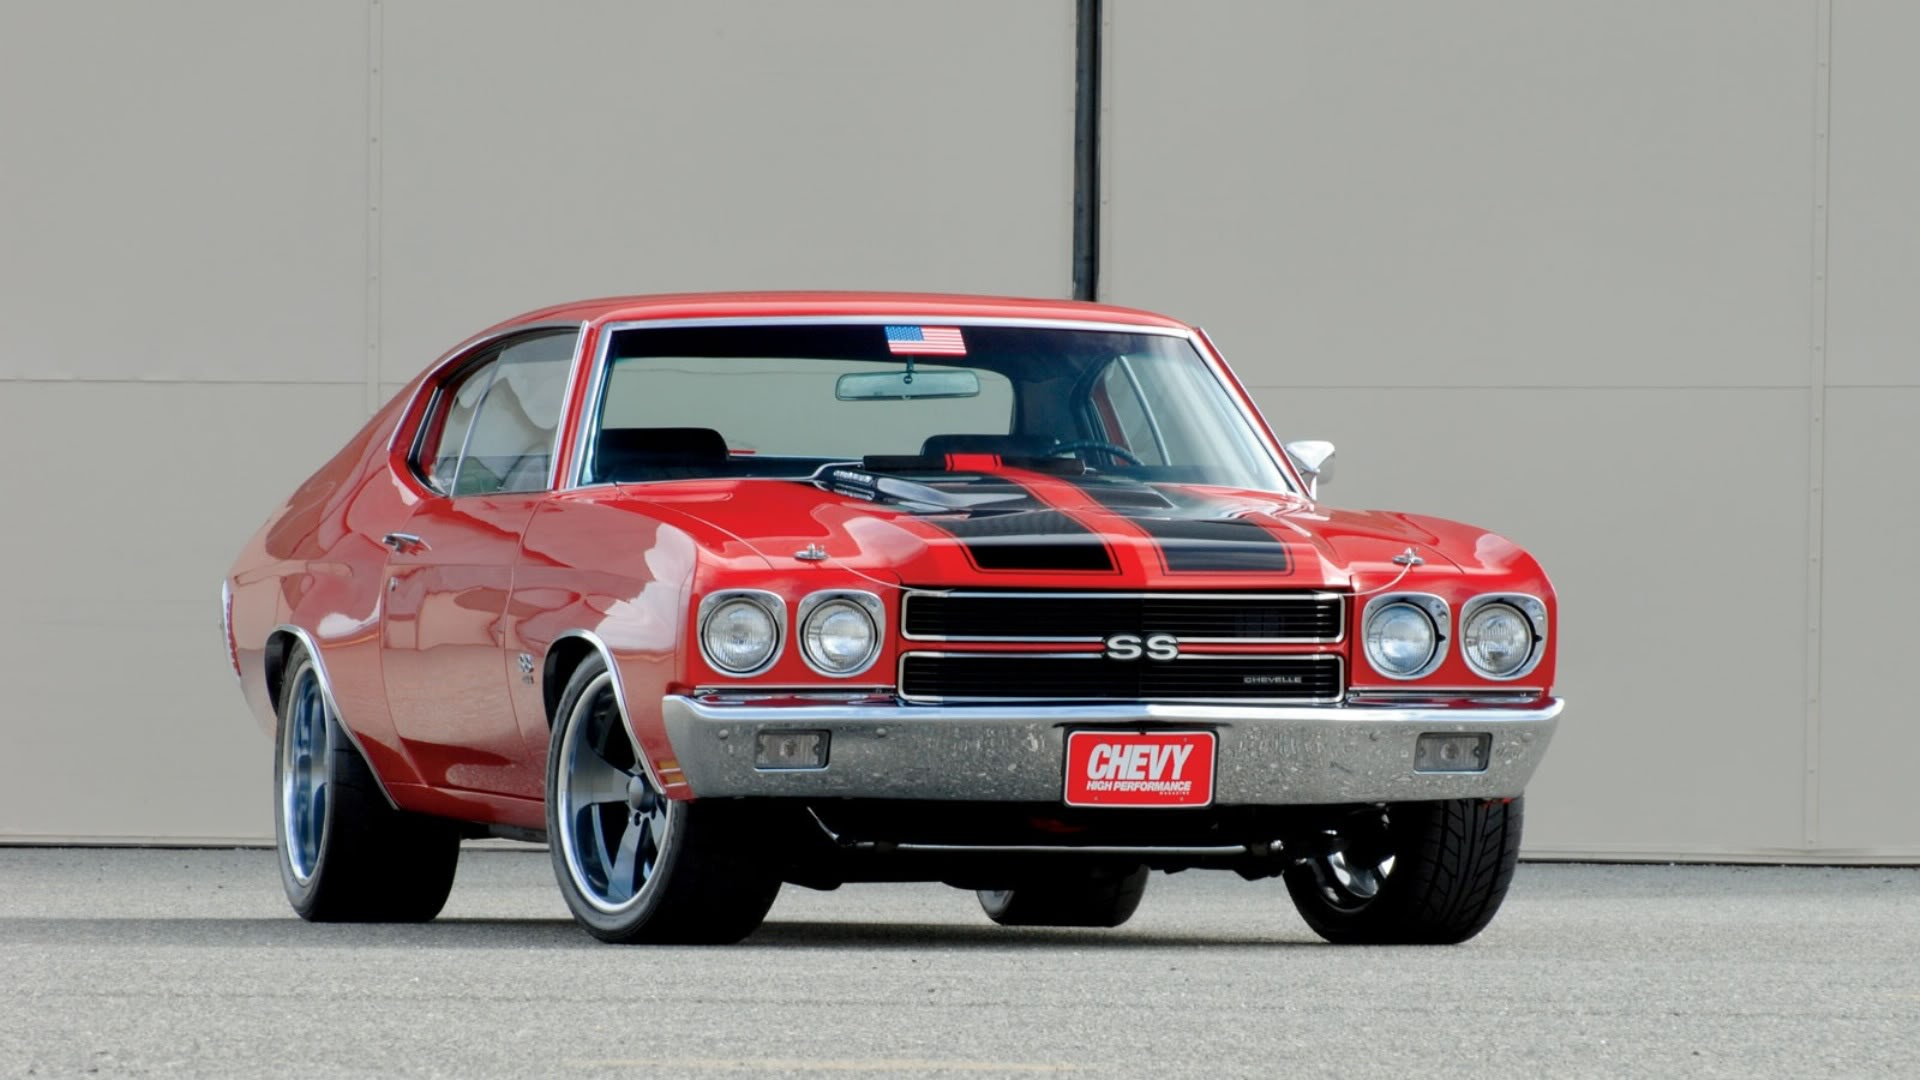 1970 Red Chevy Chevelle SS 454 wallpaper background 1920x1080